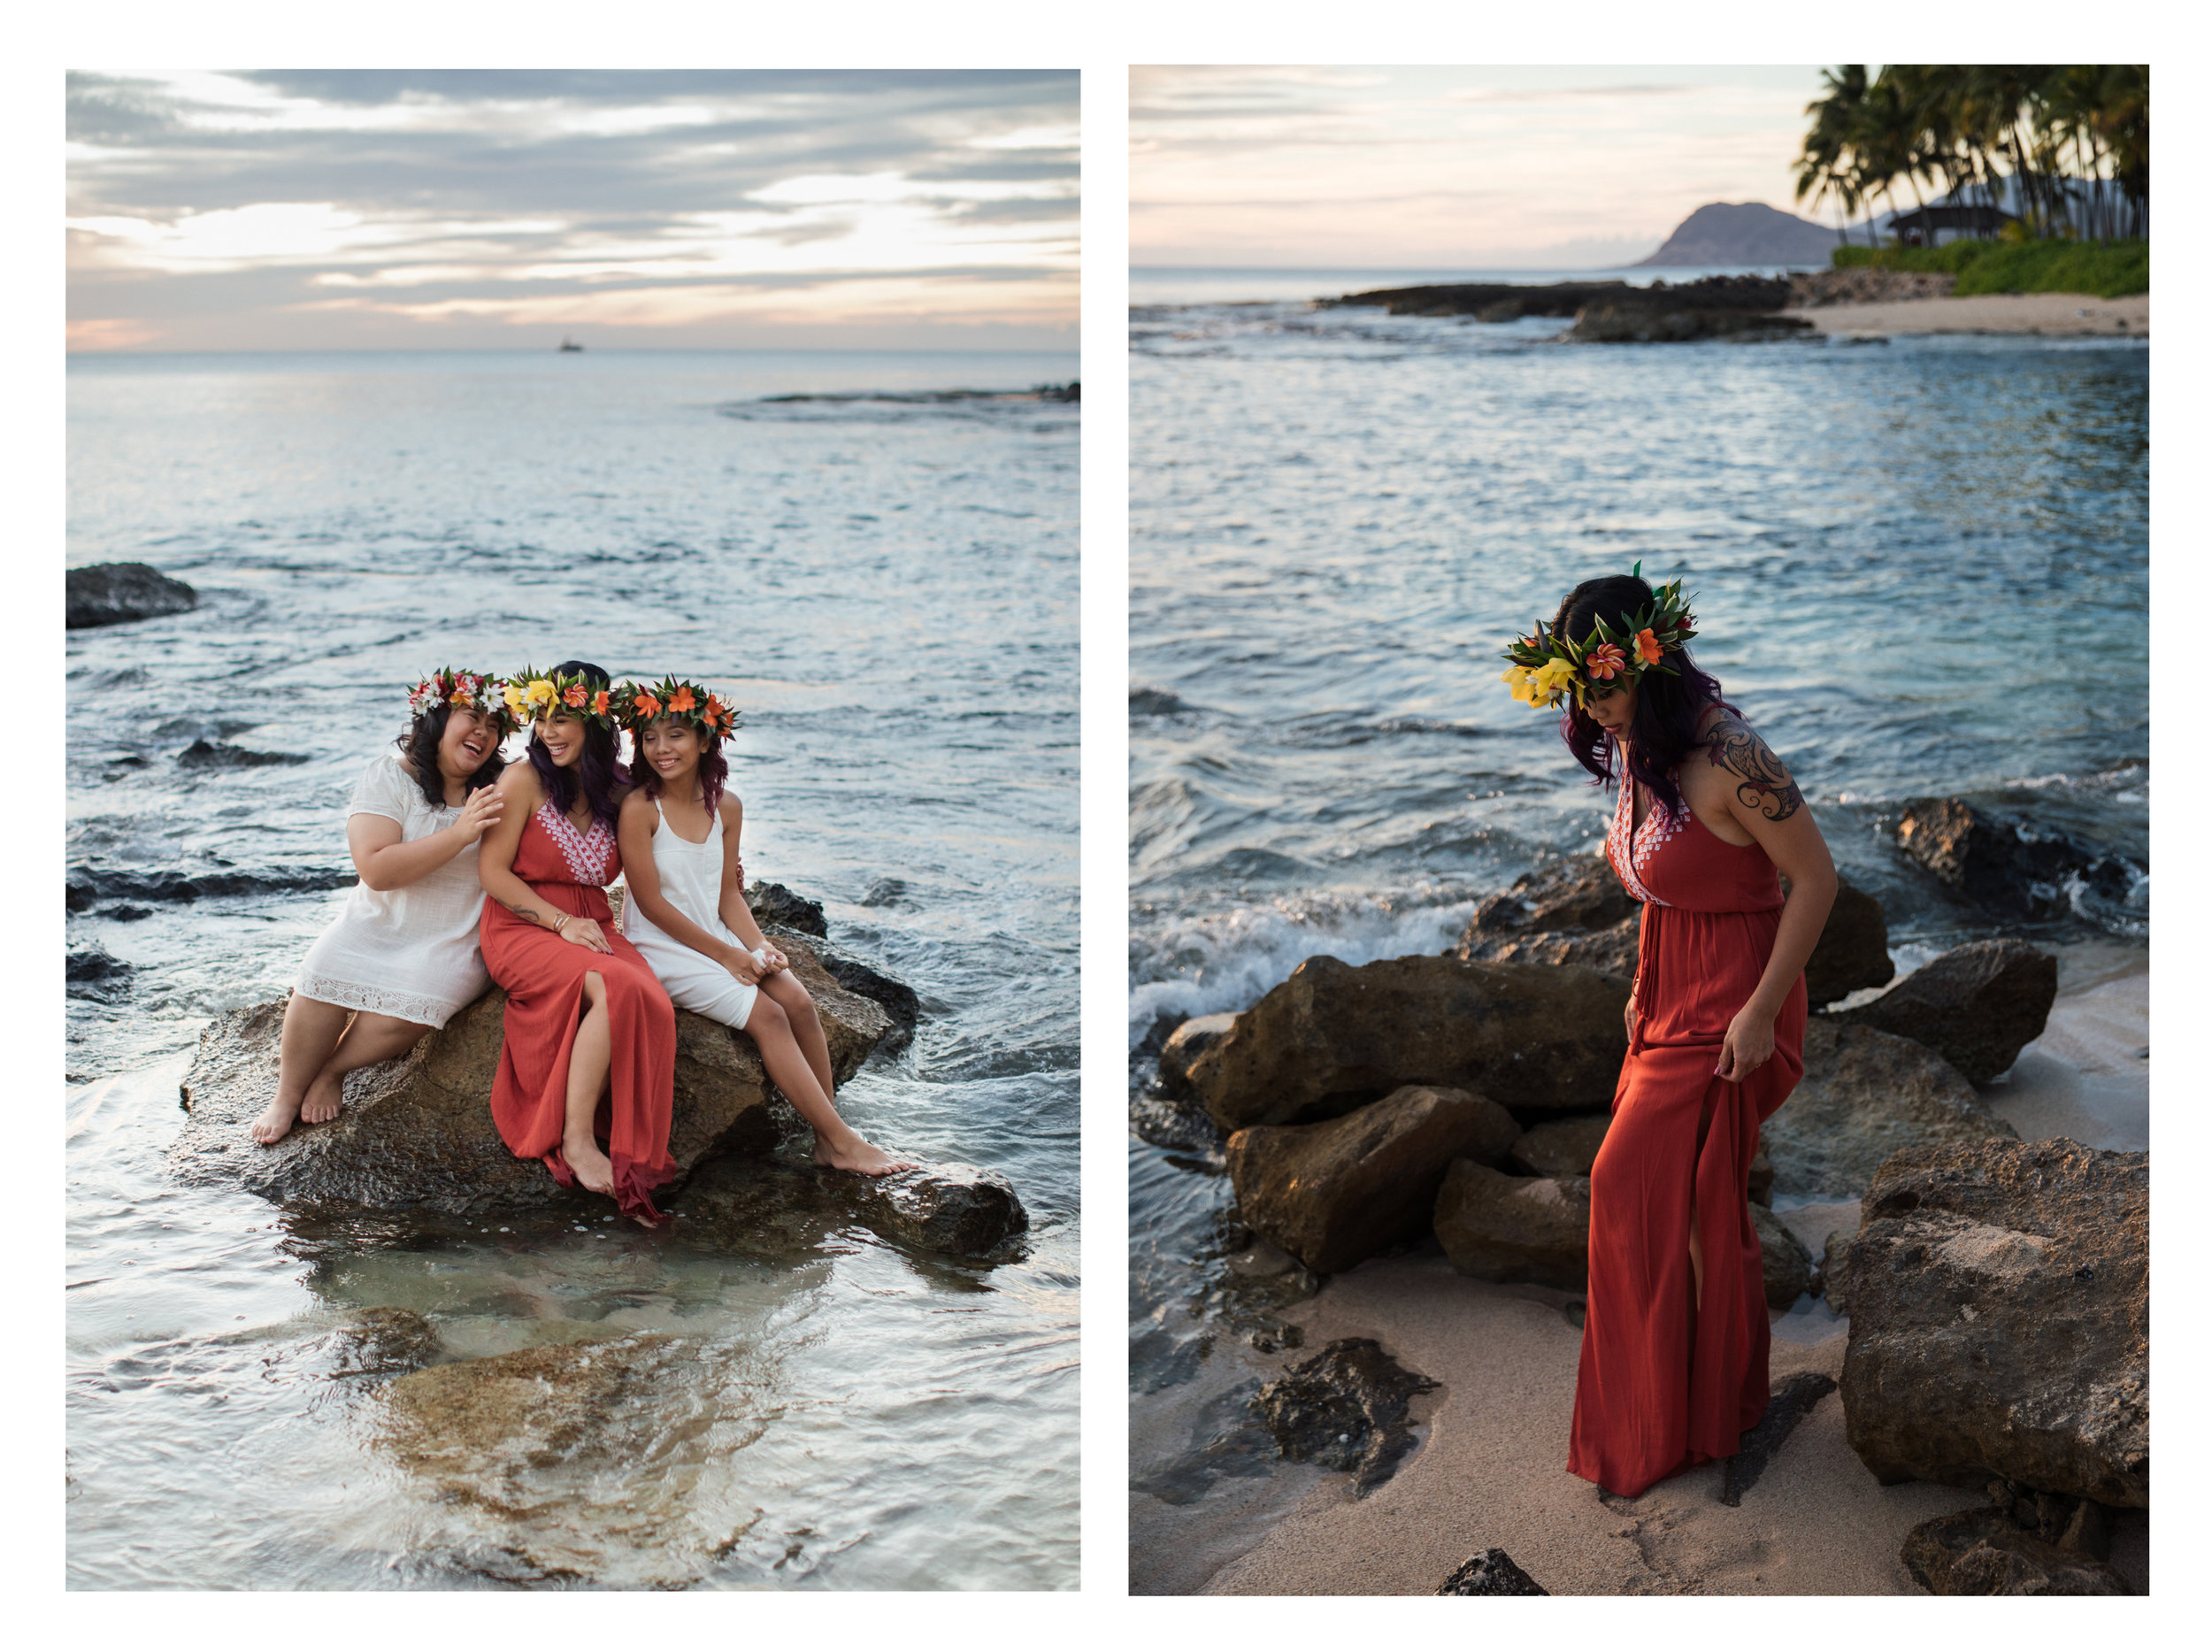 Ko Olina Mother Daughter Photography Session